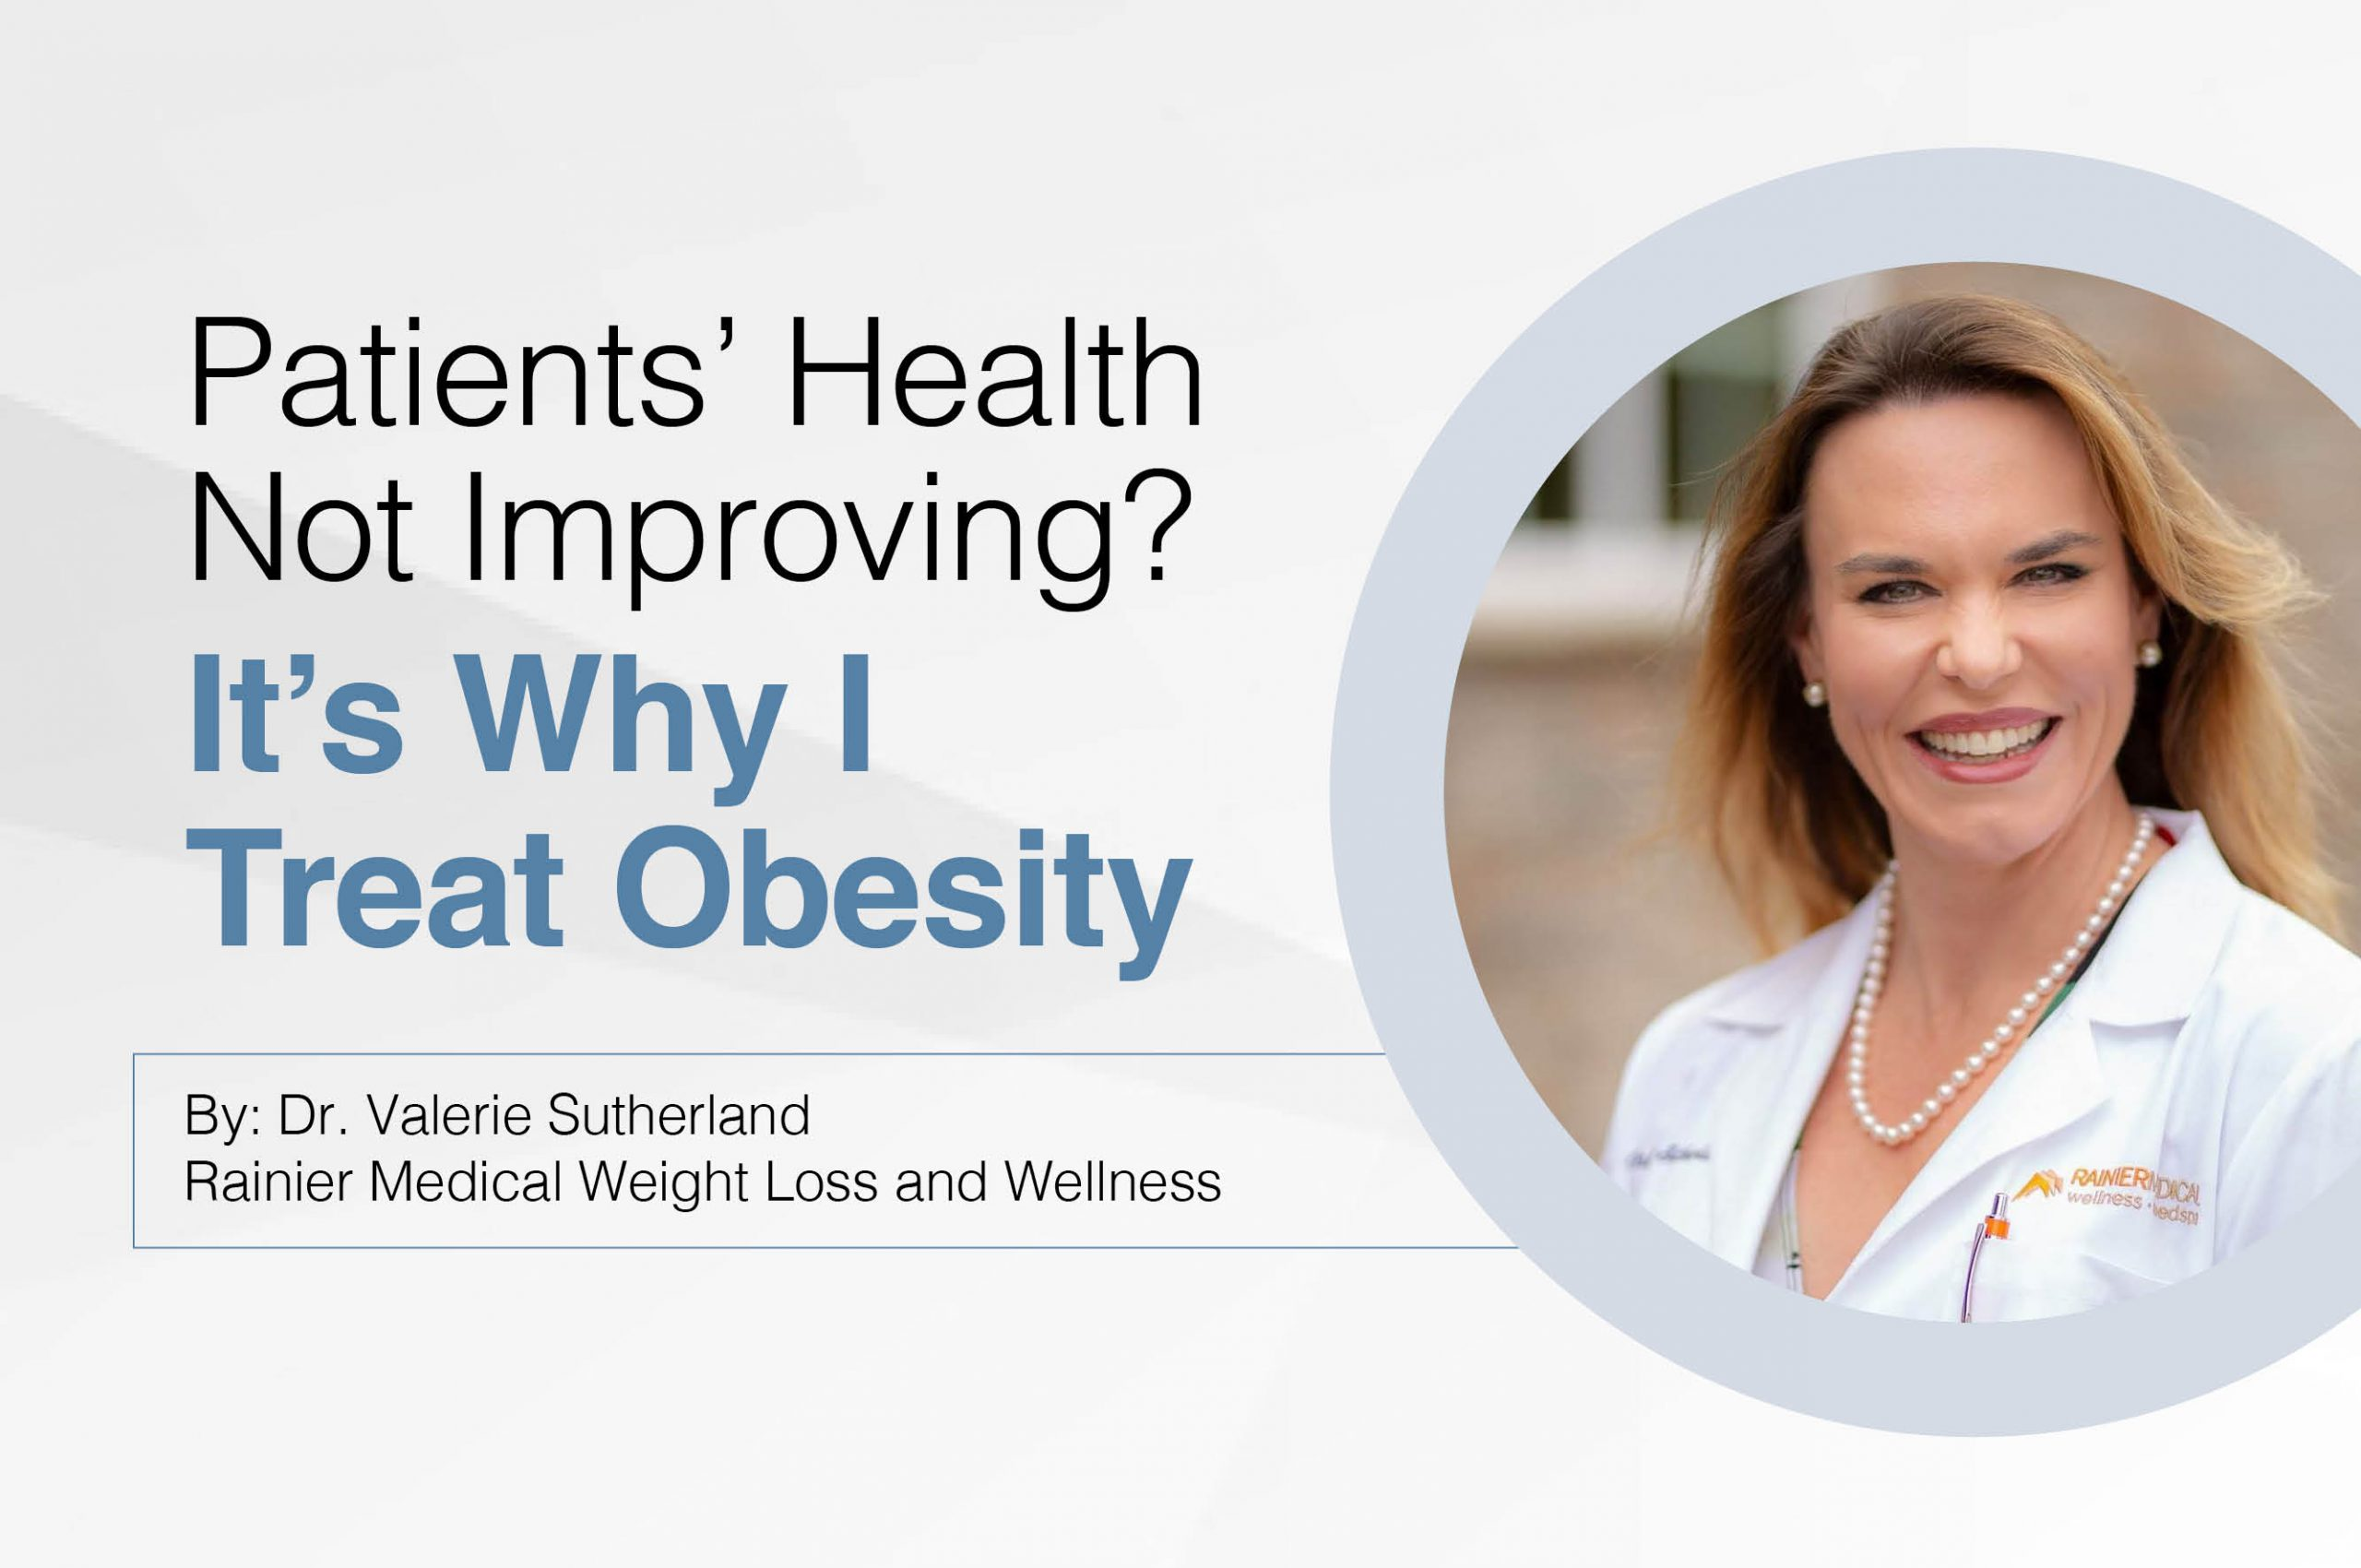 Patients' Health Not Improving? It's Why I Treat Obesity